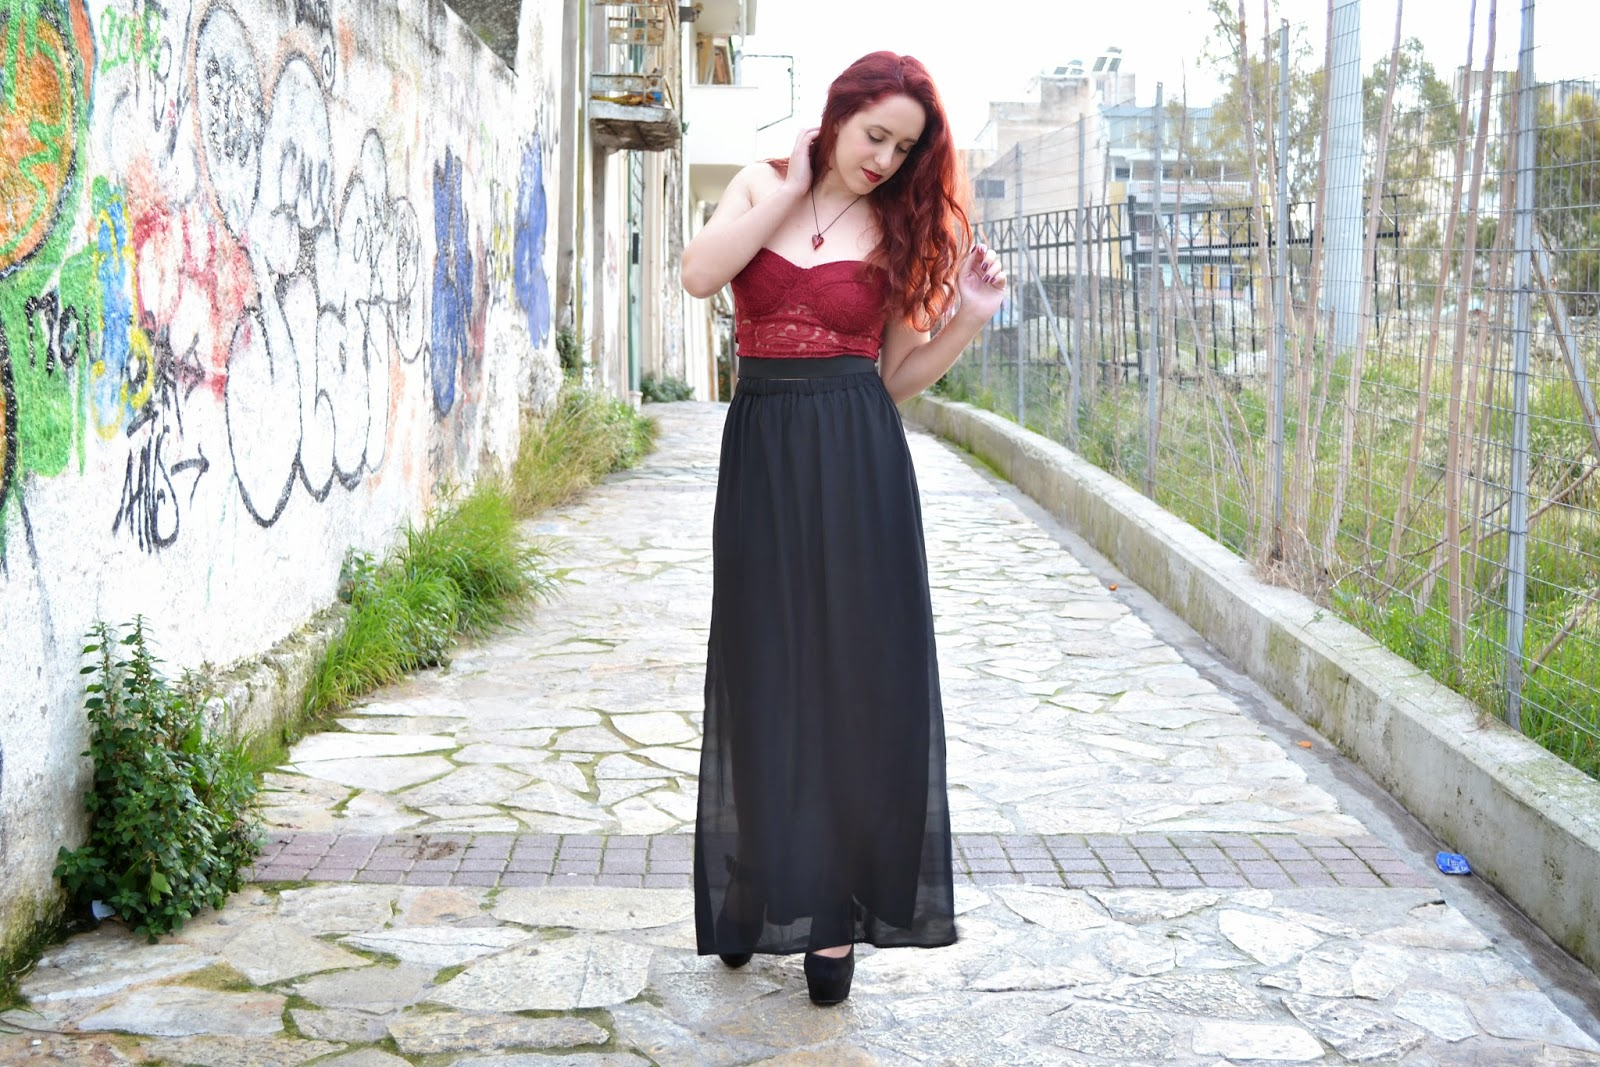 Anna ,Keni,redhead, spotlights on the redhead,fashion,model,blogger, BSB, migato, clothes, outfit, valentine's day, night,